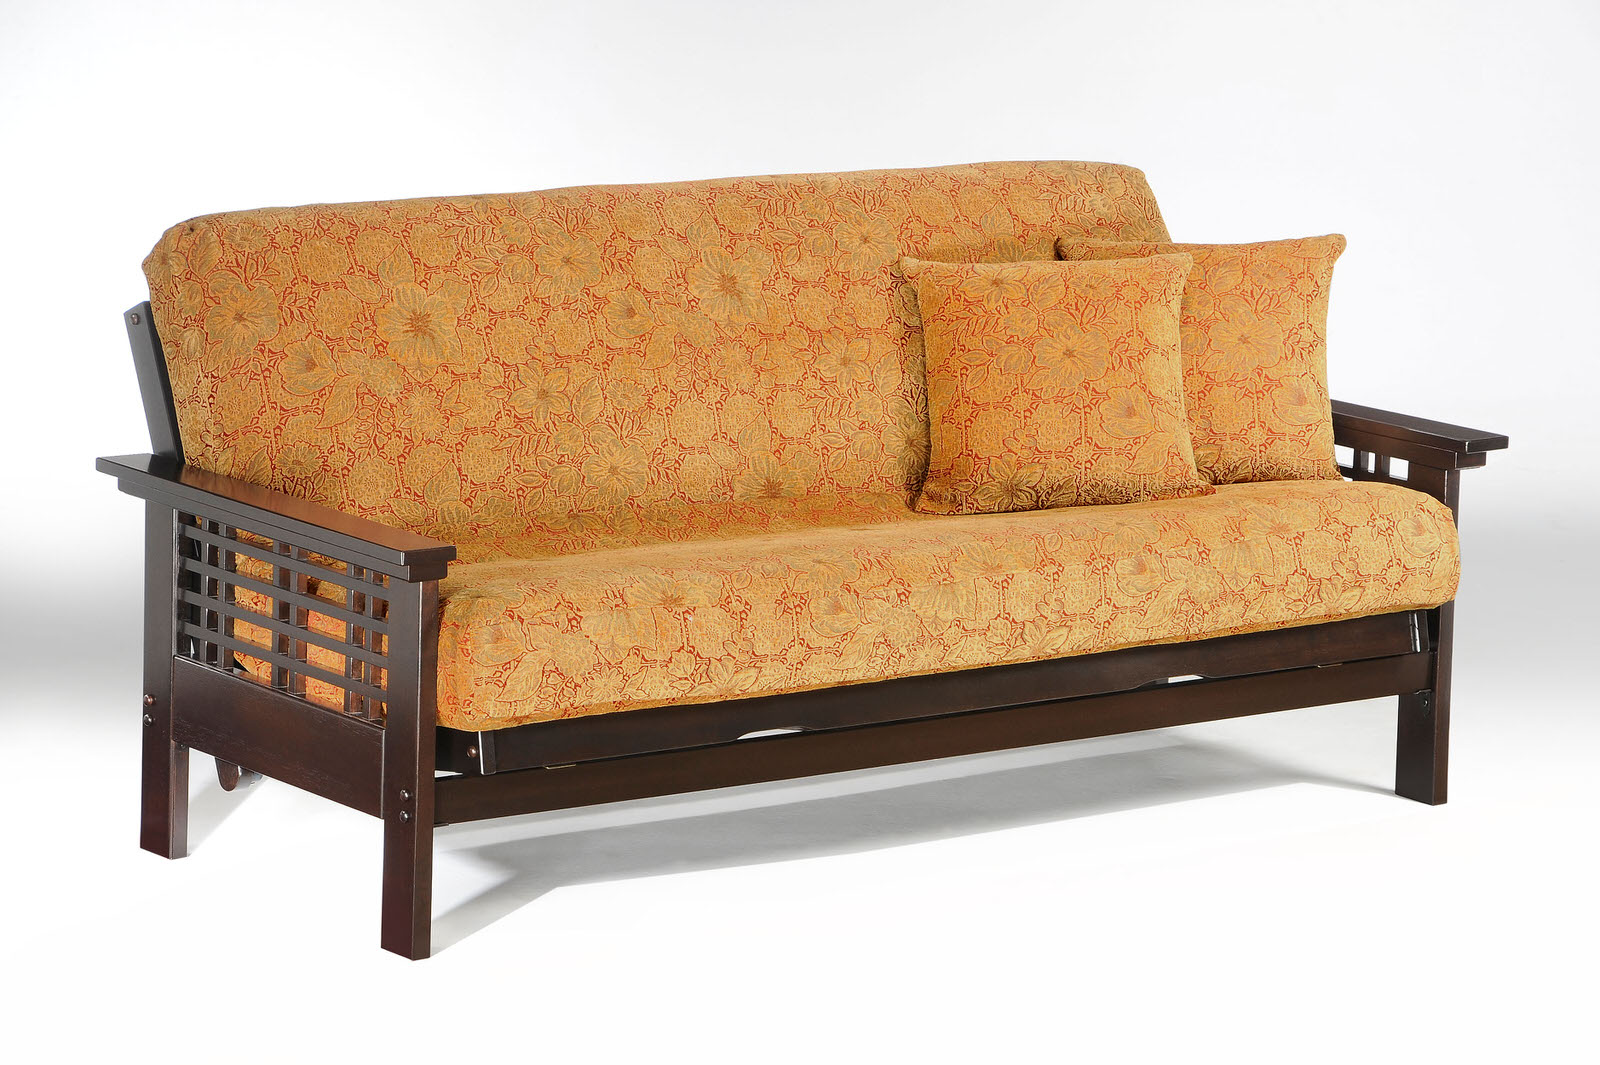 Vancouver Standard Futon Frame By Night